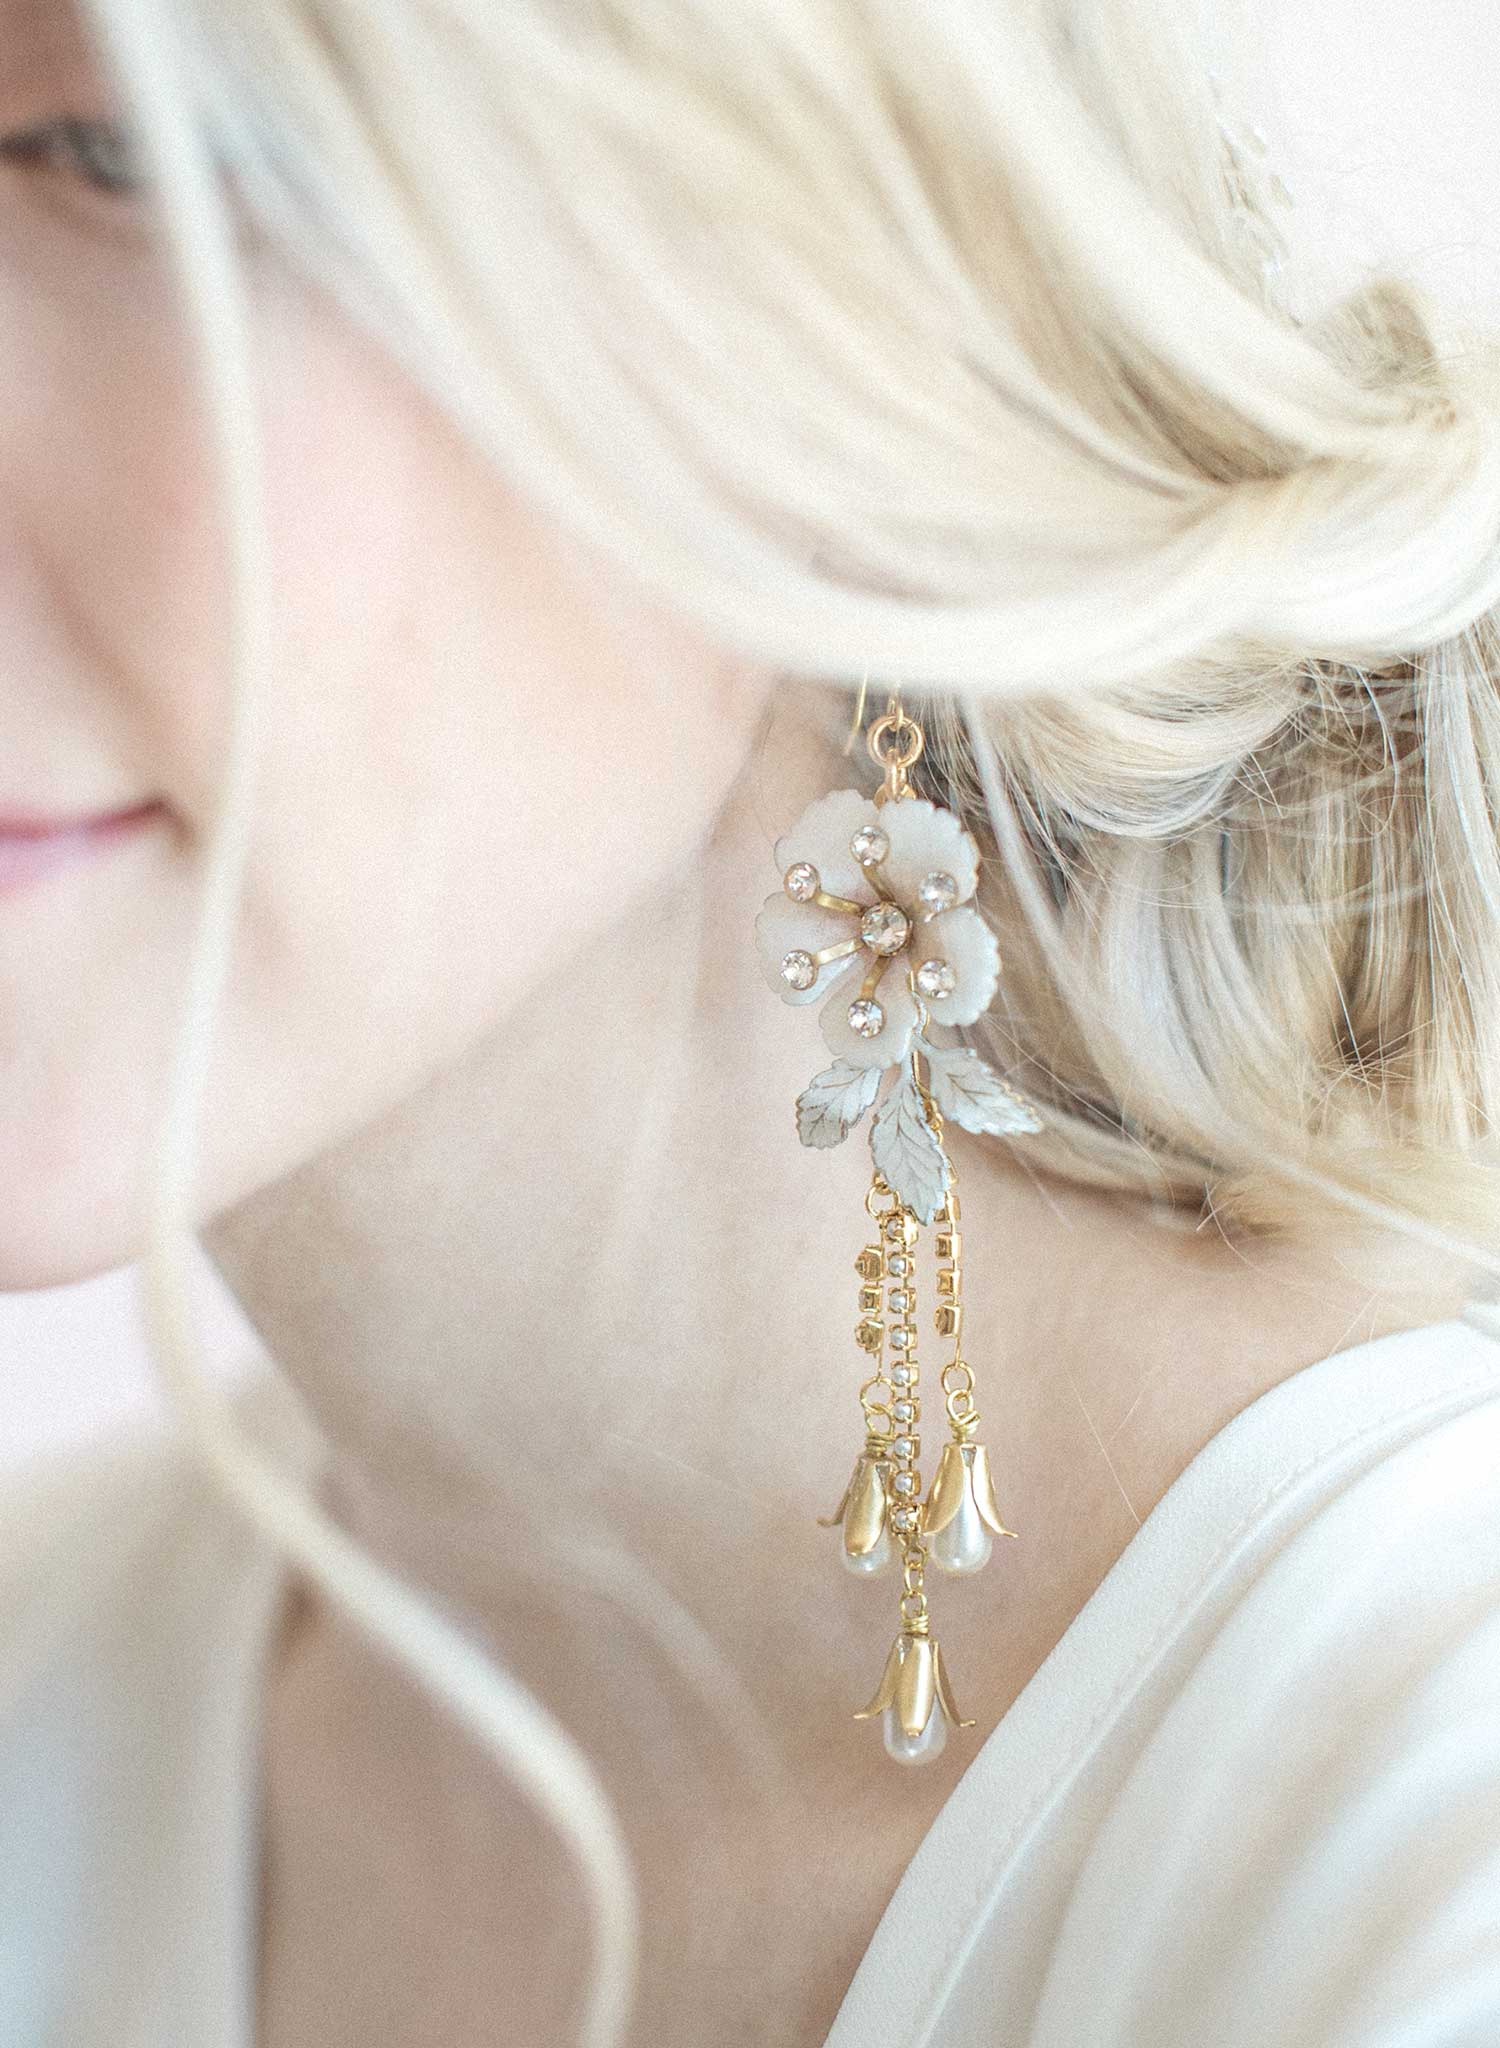 Sugar blossom and dew drop earrings - Style #821